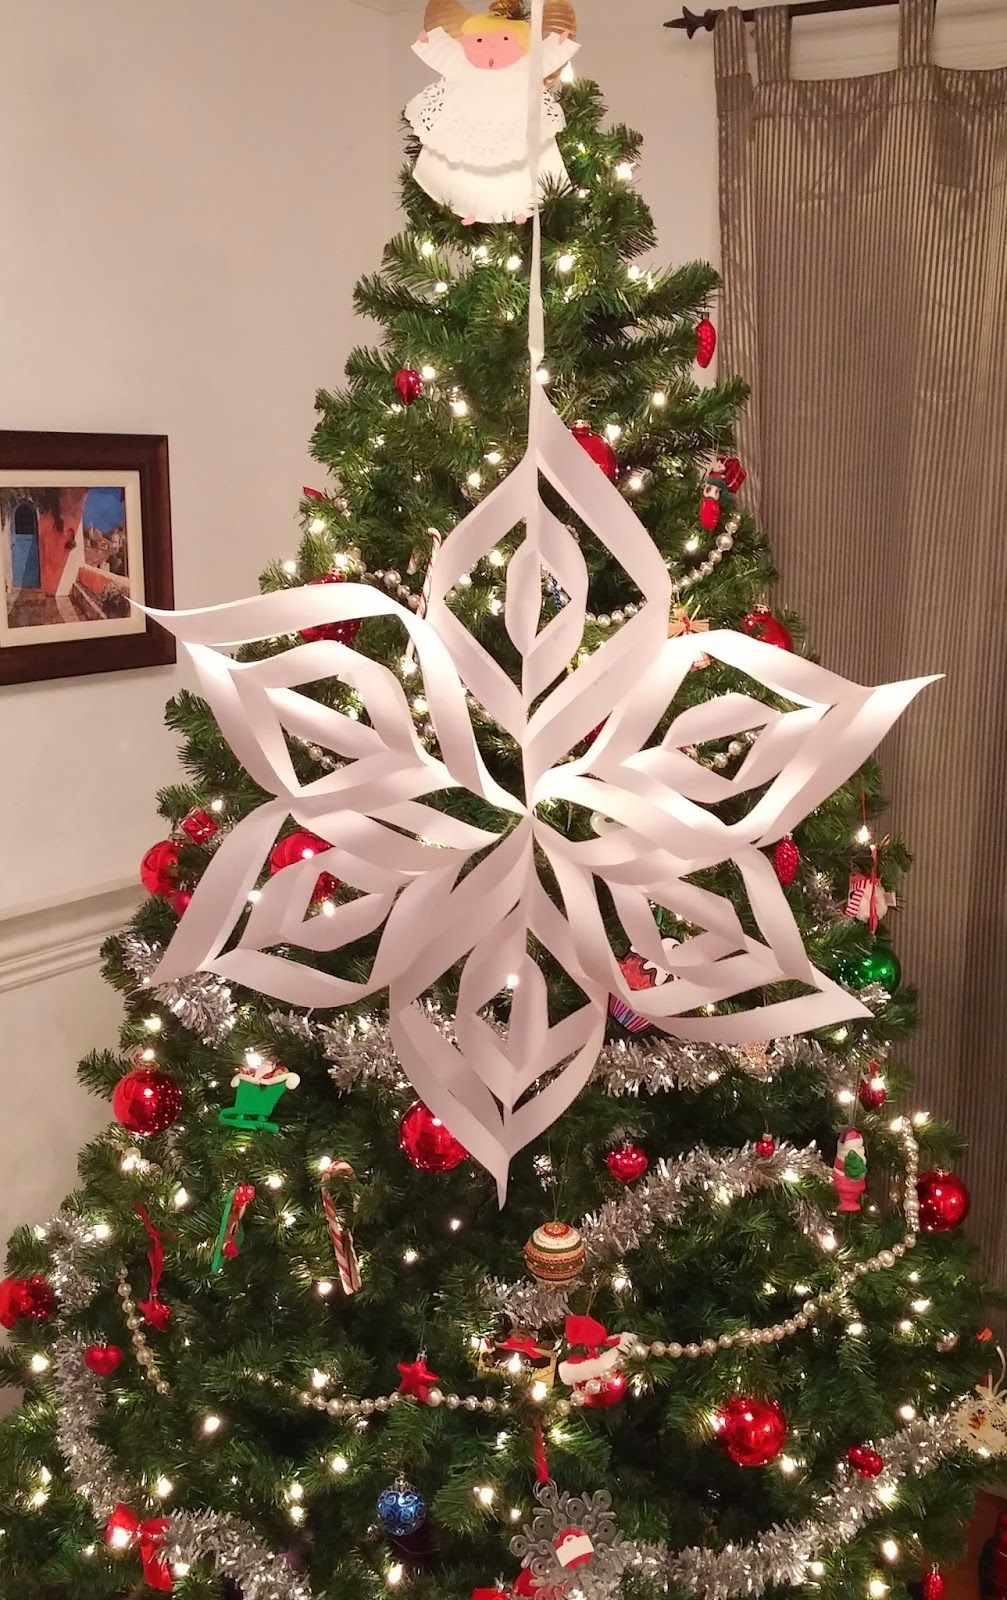 This Paper Craft Was Taught To Me By One Of My Teacher Colleagues At Work.  She Does Them Every Year With Her Students And Every Year I Marvel At How  ...